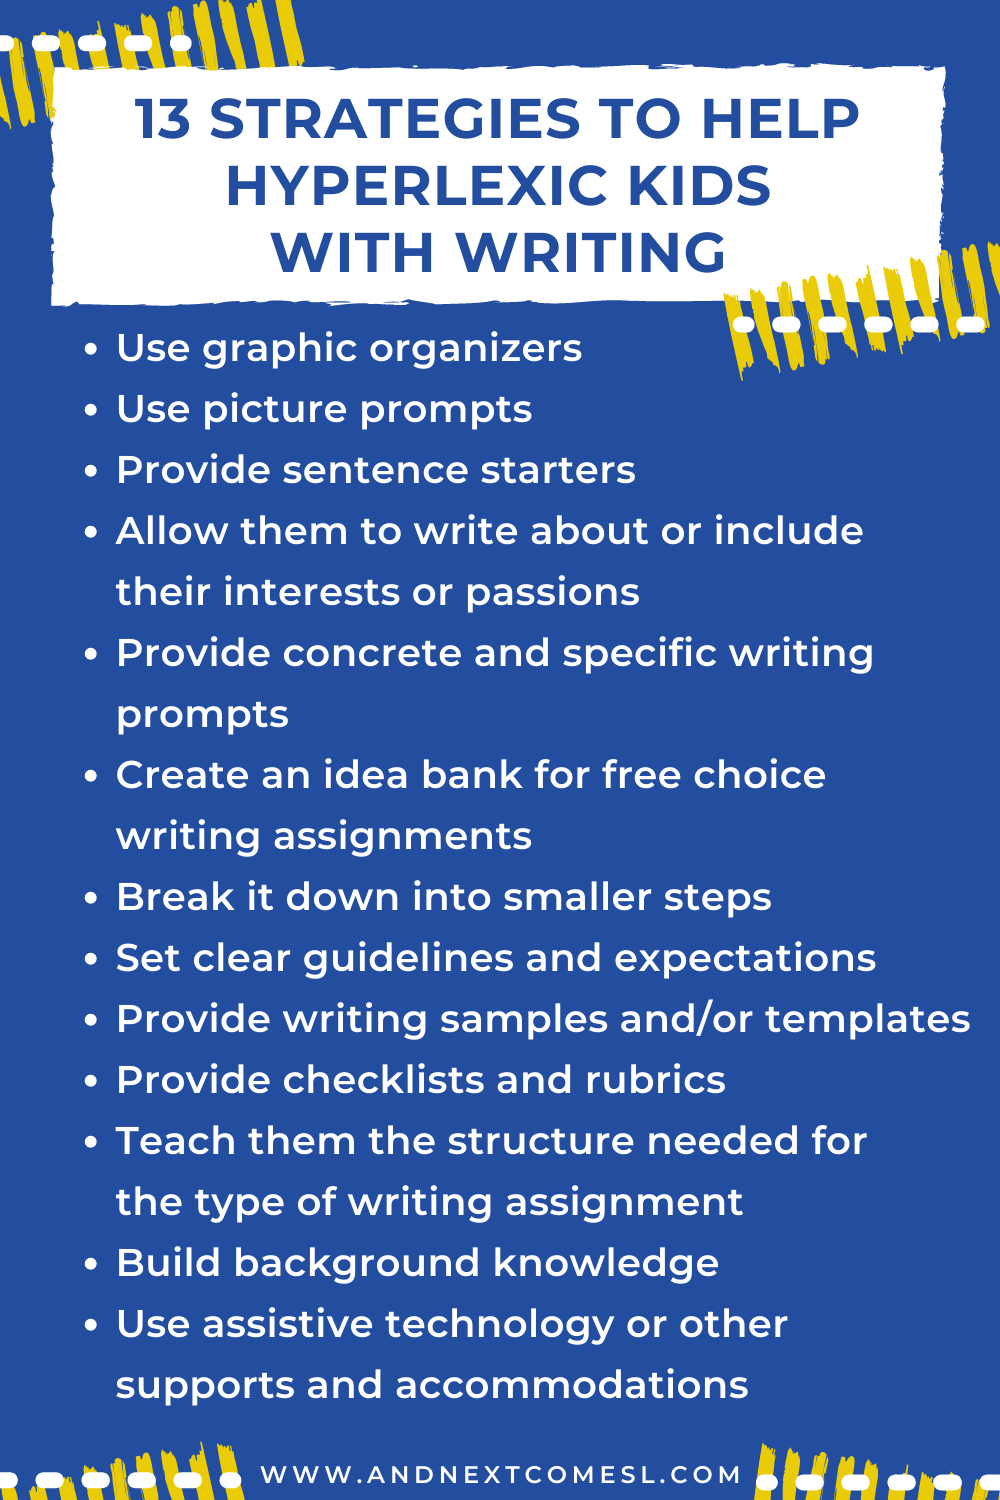 A list of strategies and tips for helping hyperlexic kids with writing assignments